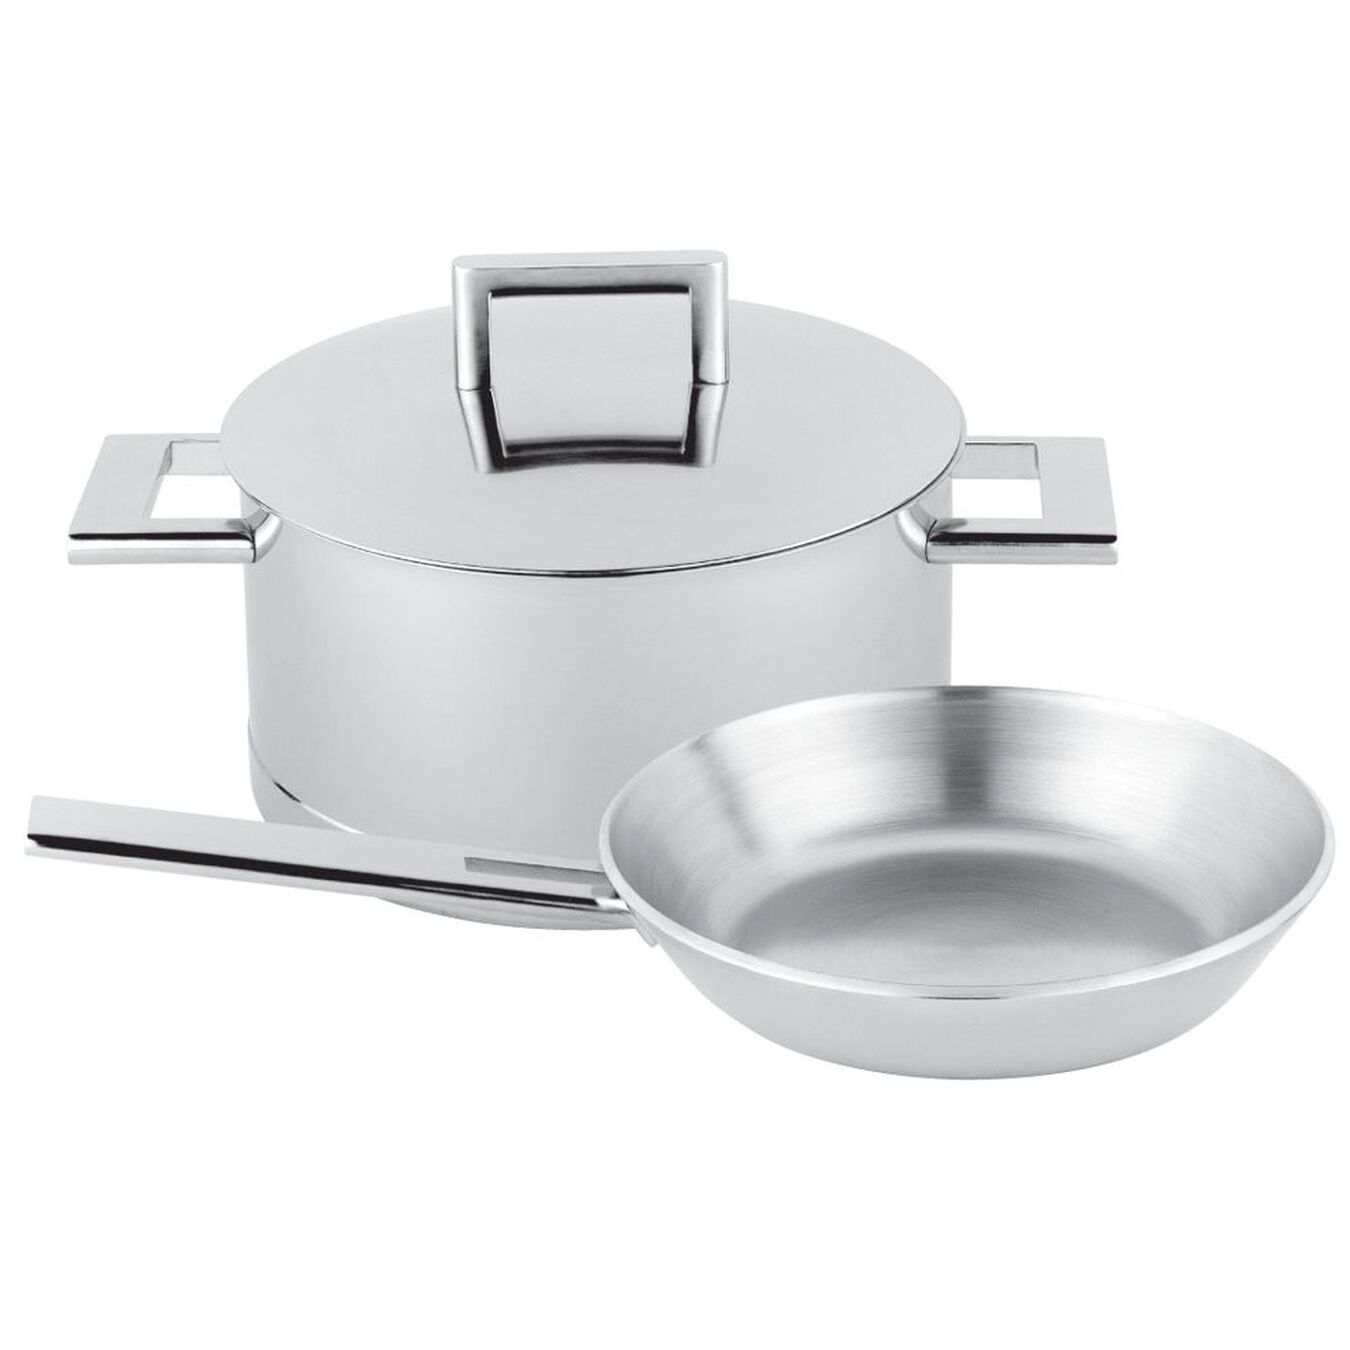 3-pc, 18/10 Stainless Steel, Pots and pans set,,large 1